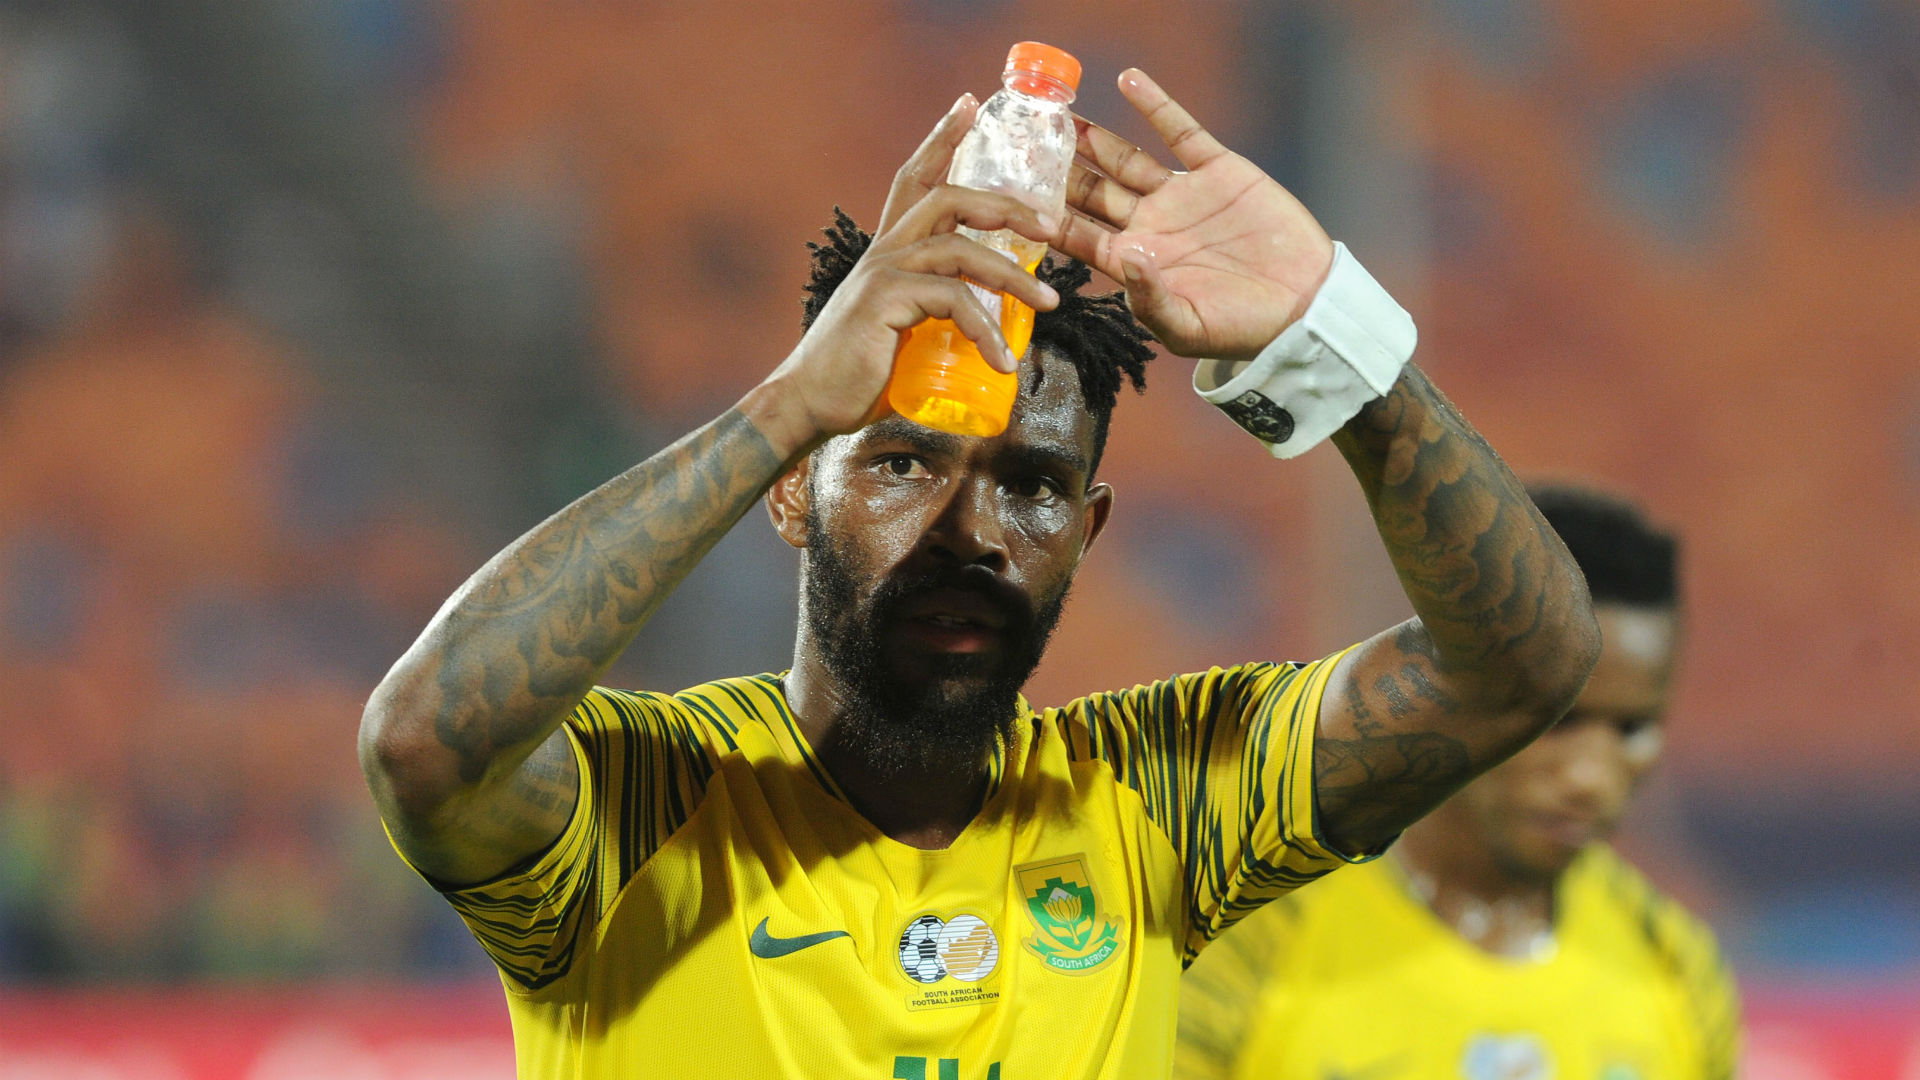 Afcon 2019: South Africa captain Hlatshwayo laments 'soft goals' conceded against Nigeria